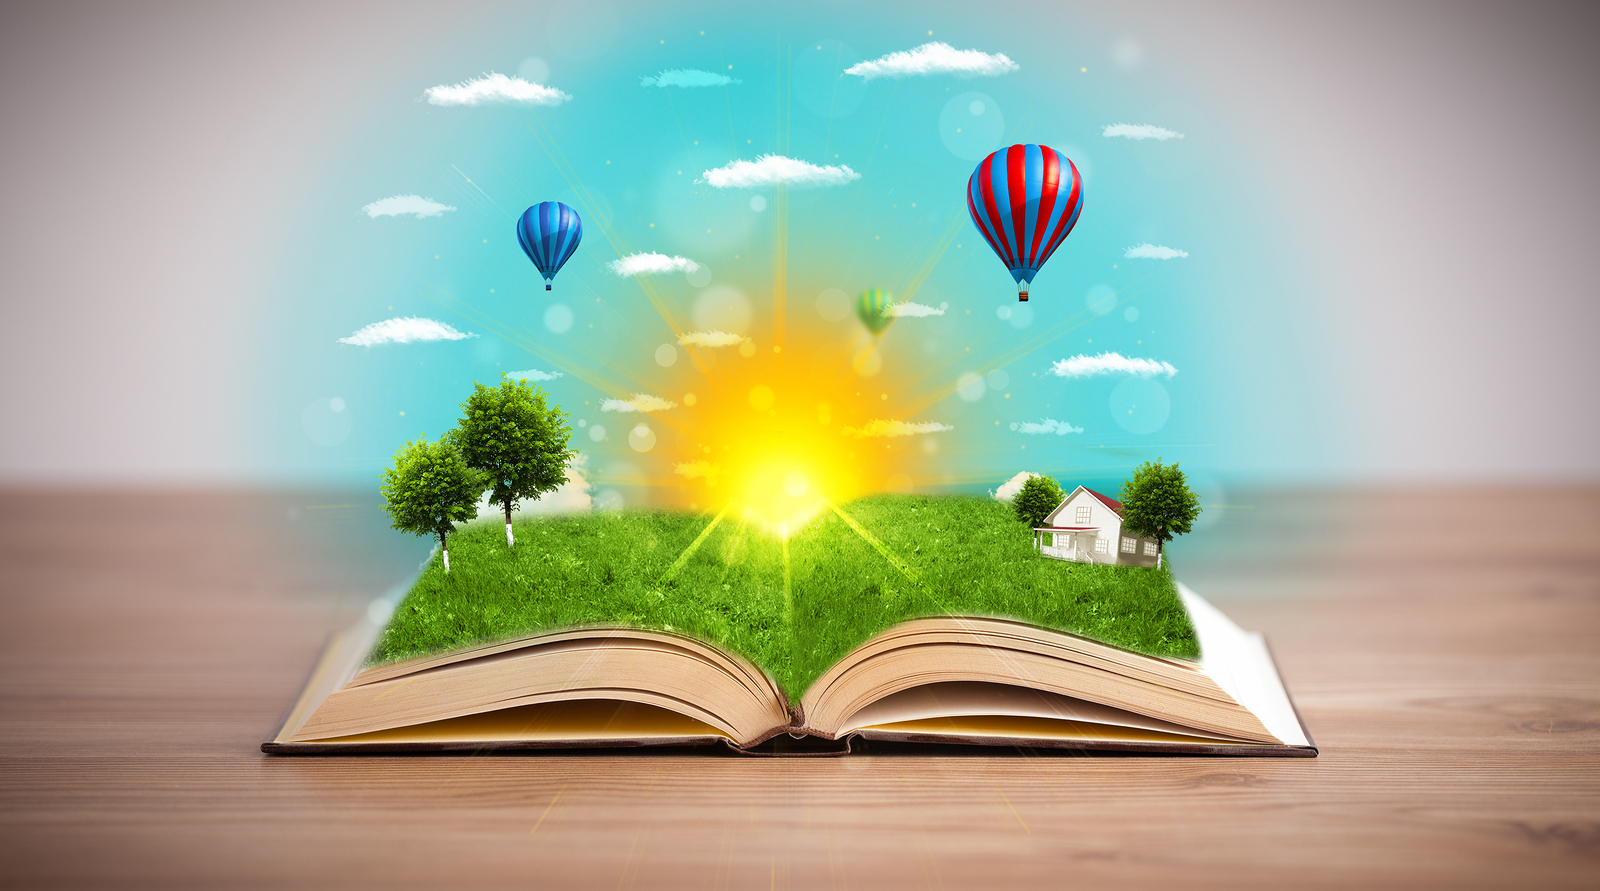 bigstock-Open-book-with-green-nature-wo-50952119